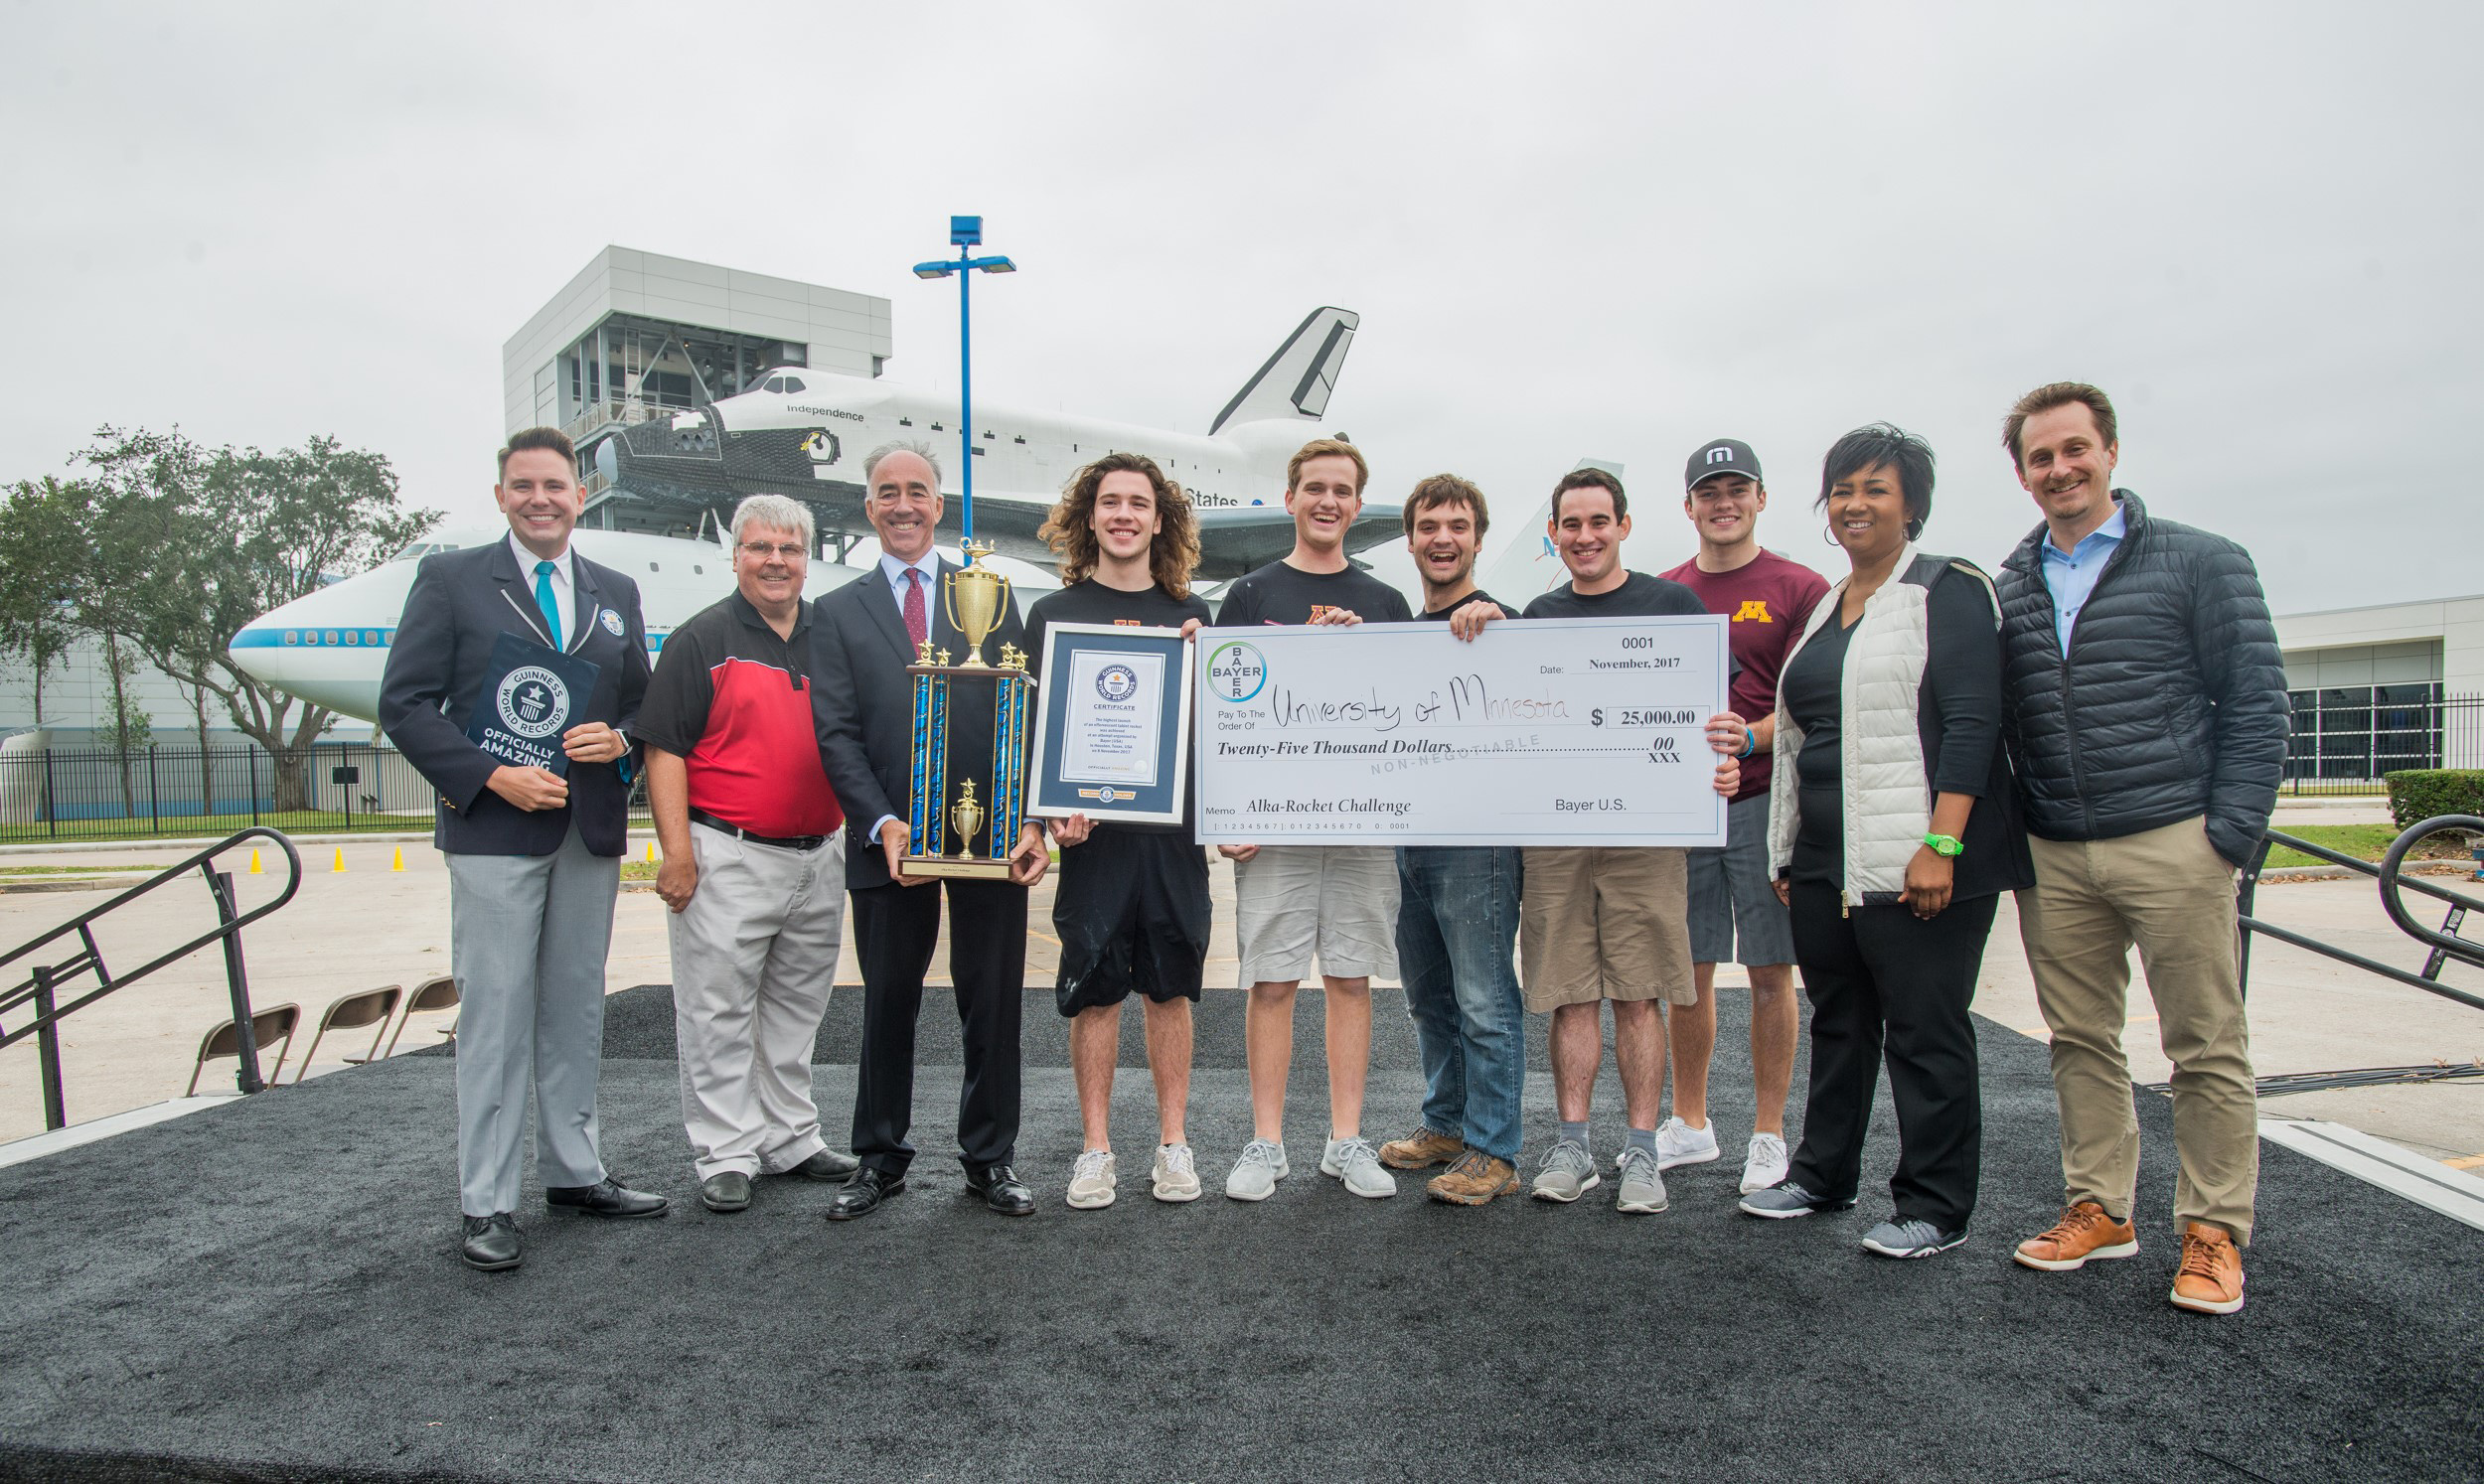 University of Minnesota students accept the winning prize in the Bayer-Big Ten Alka-Rocket Challenge at Space Center Houston